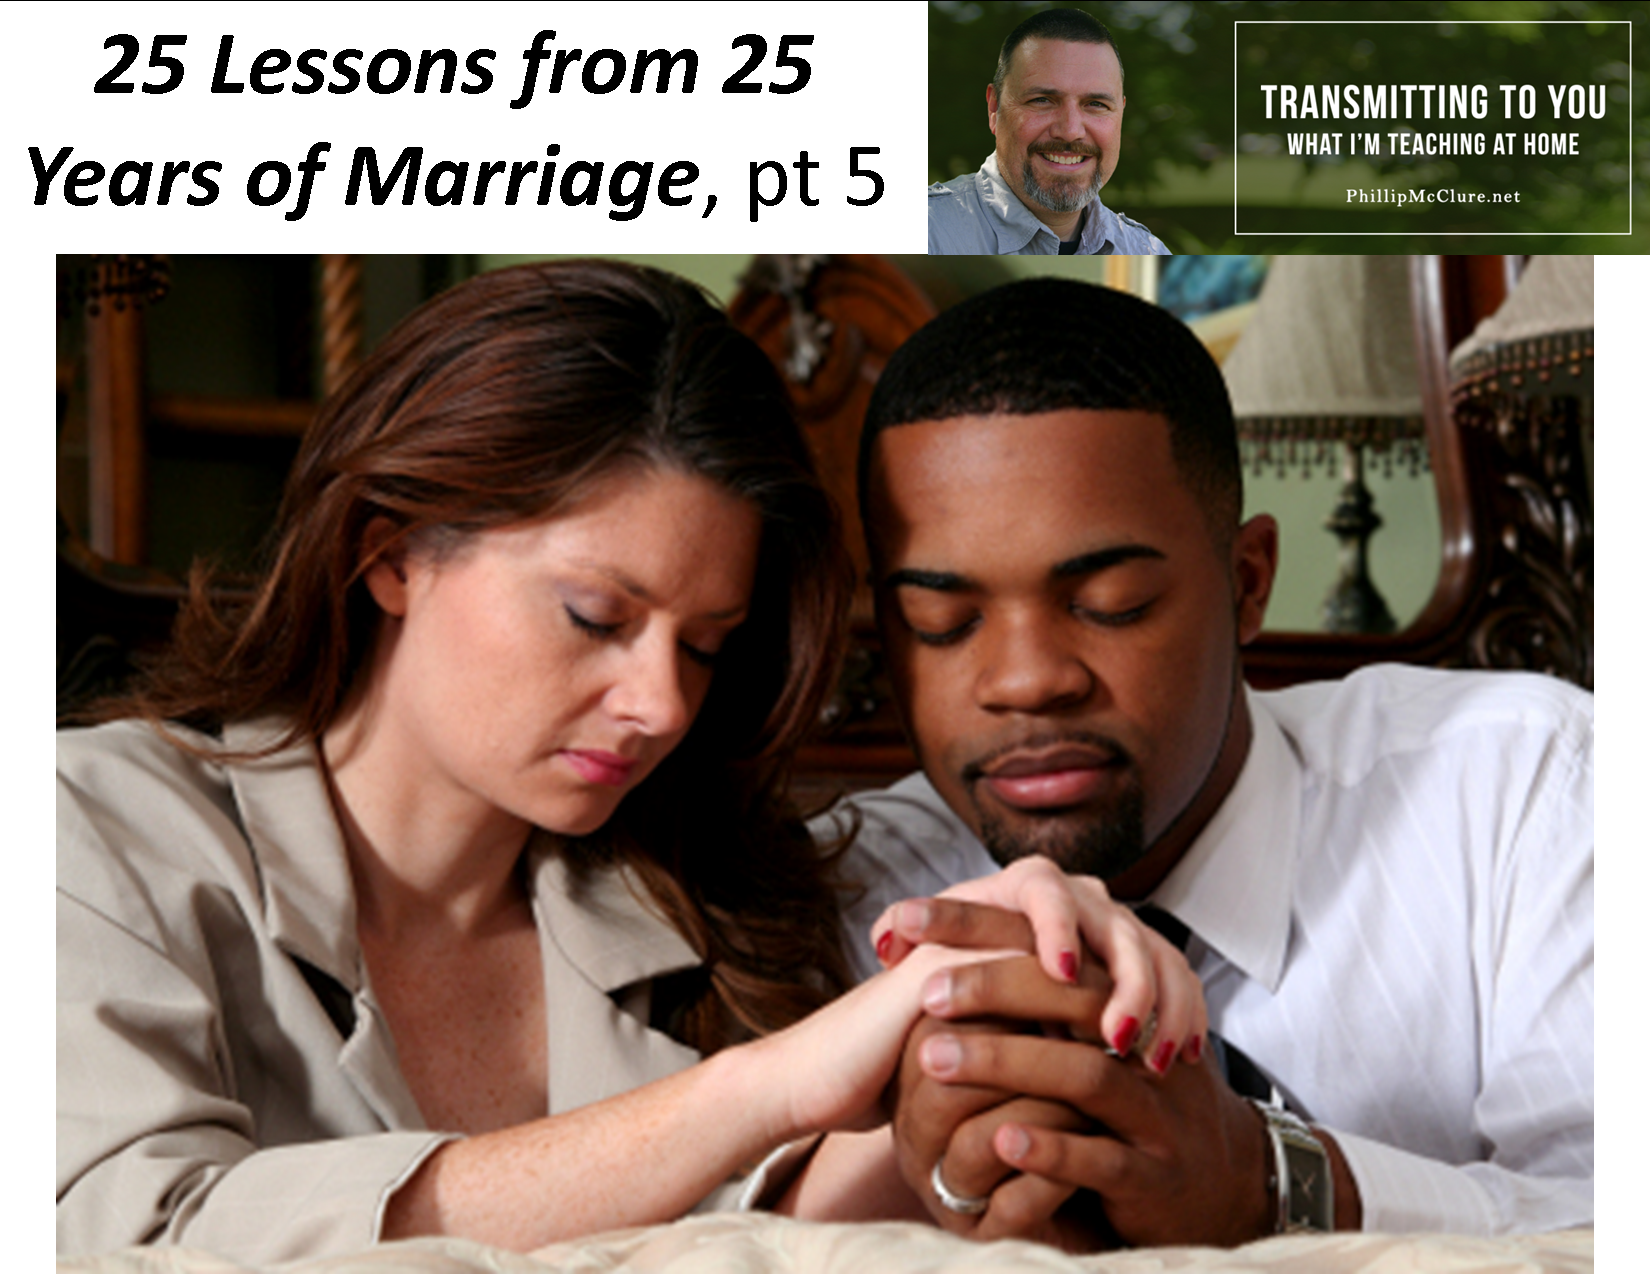 image for 25 lessons part 5 - 6.29.15 in PNG